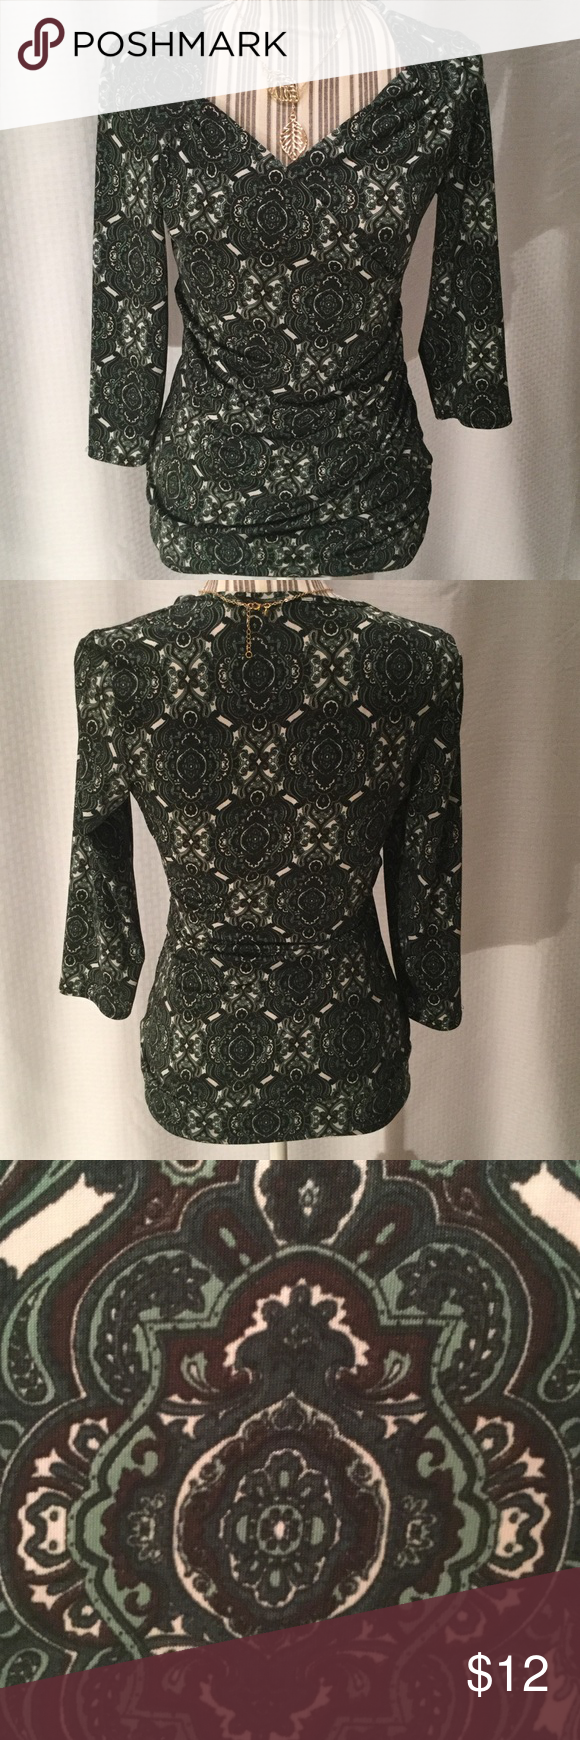 Beautiful Paisley blouse Maurice's brand. Size medium. Green, dark brown and white. Polyester/spandex blend. Faux wrap style. Very forgiving in the waist area. Looks great with a pair of brown dress pants. EUC. Maurices Tops Blouses